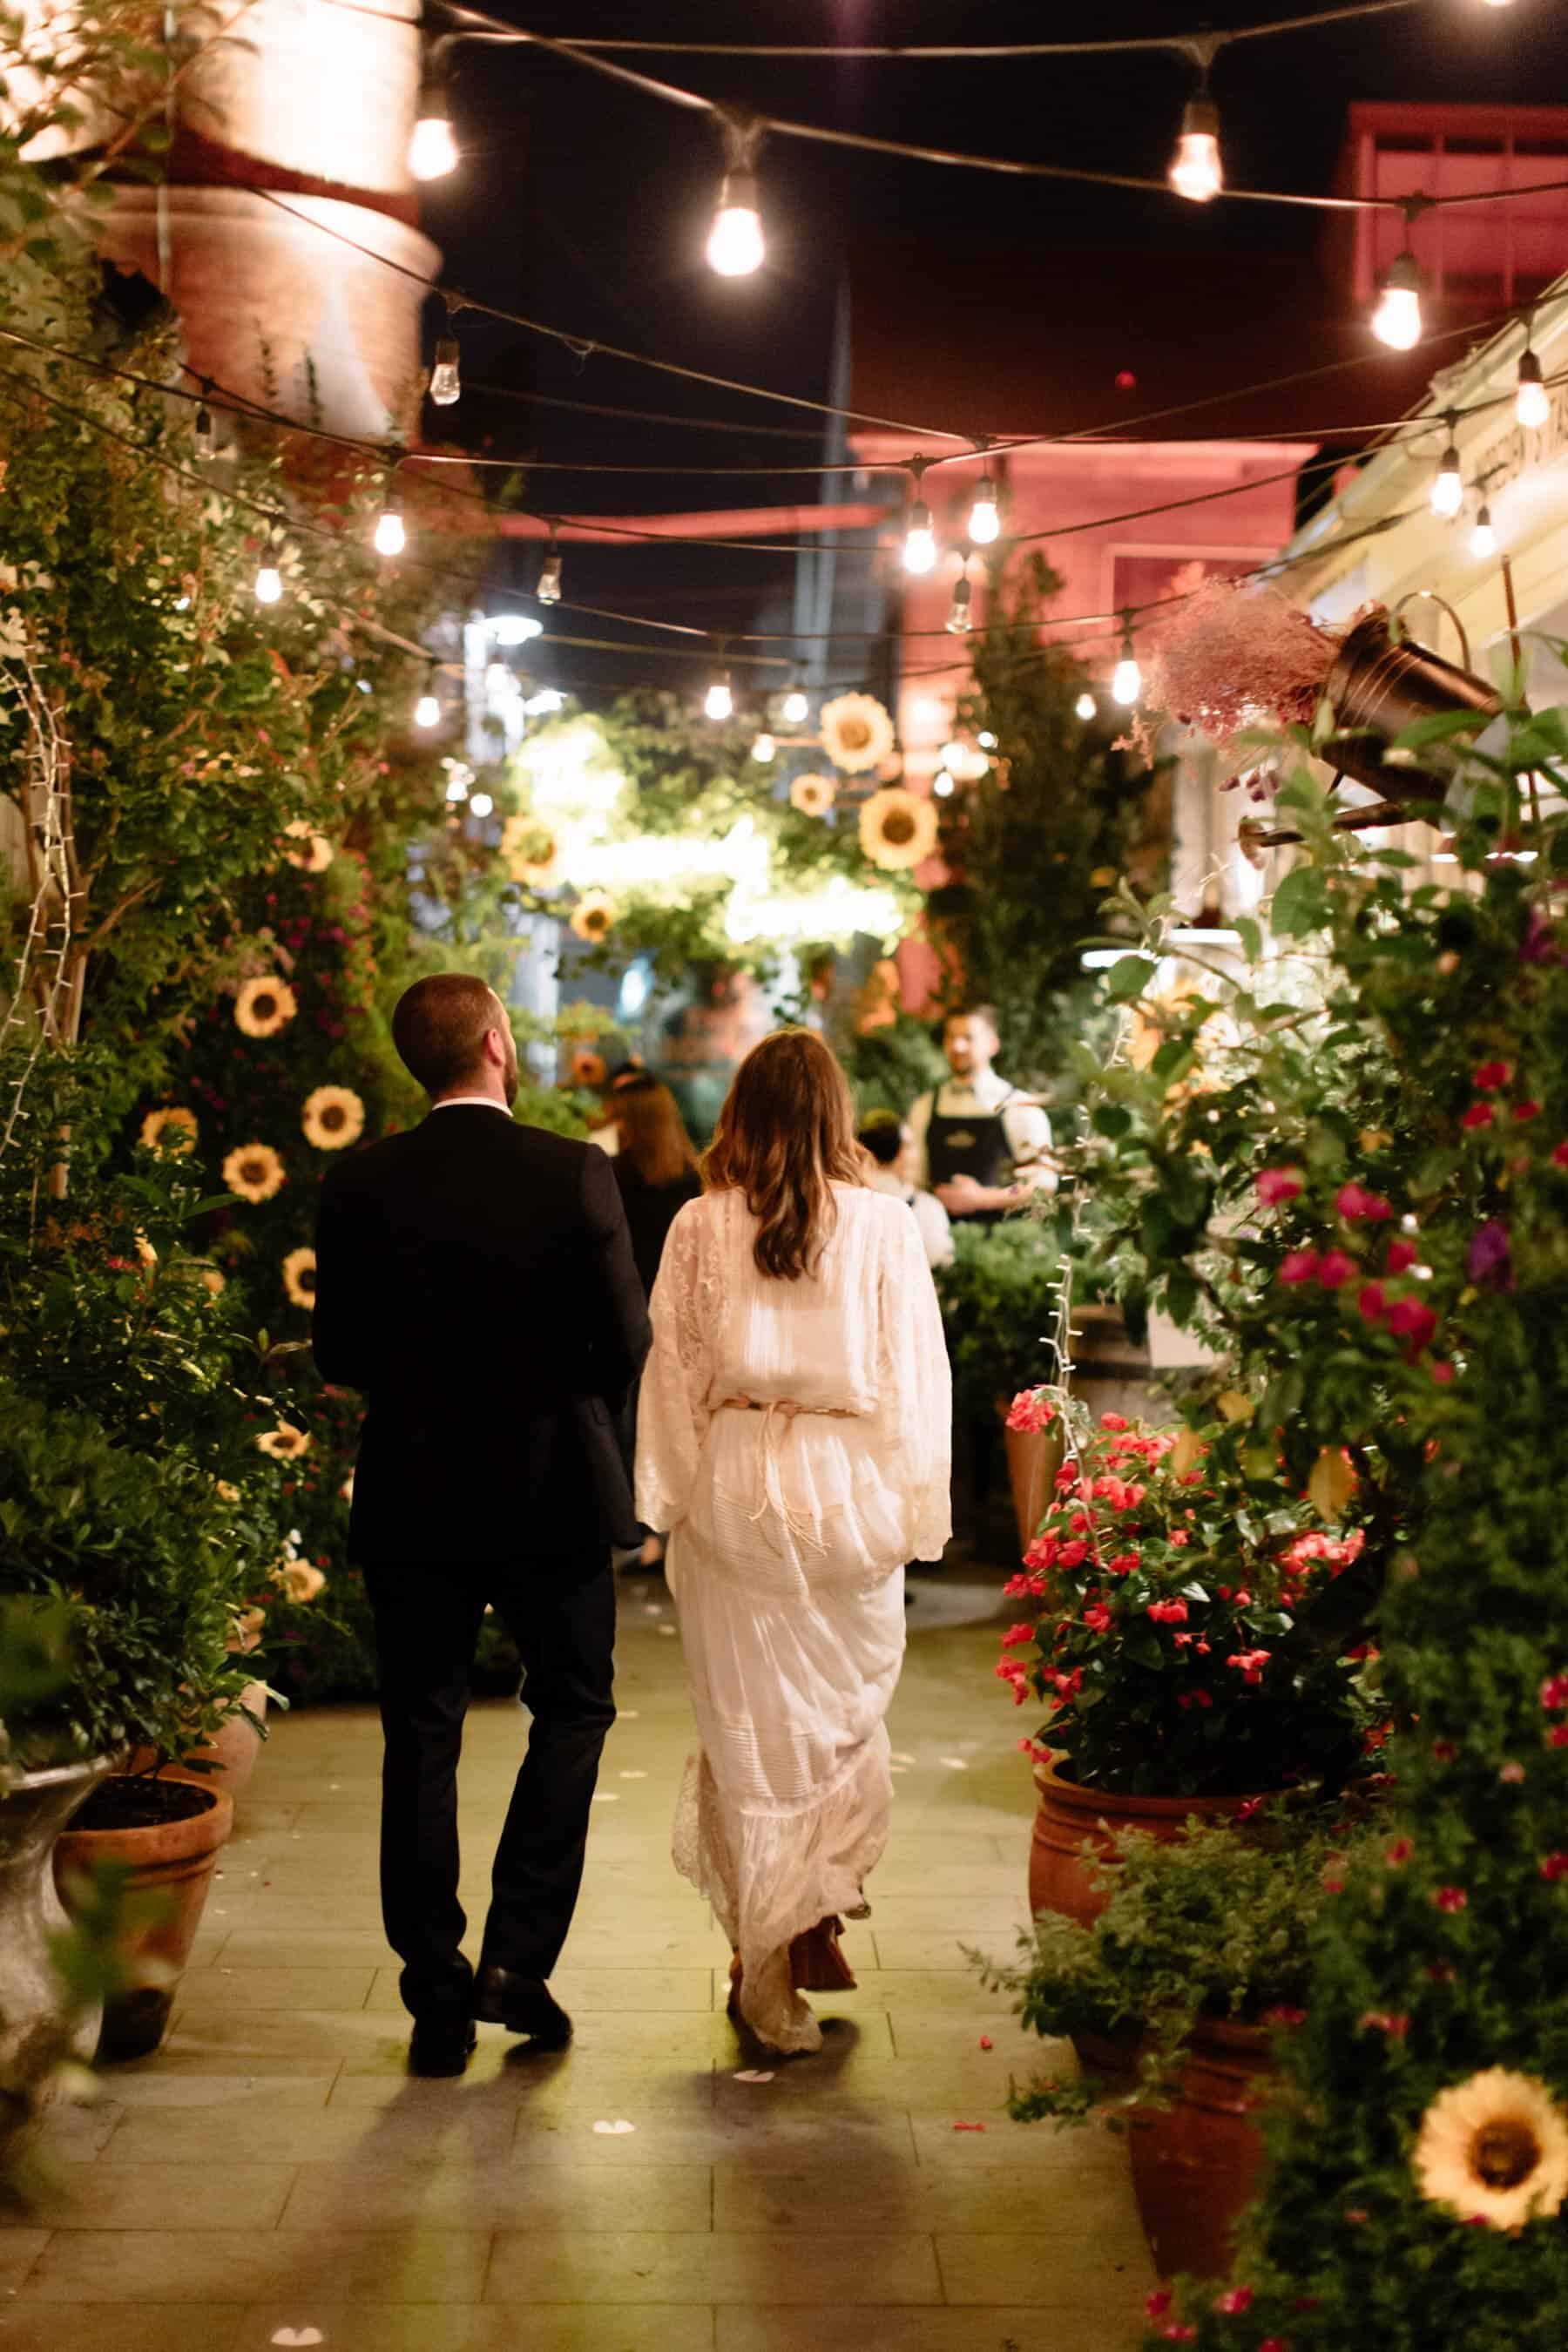 Surprise twilight wedding at The Grounds of Alexandria, Sydney / Photography by Matt Godkin